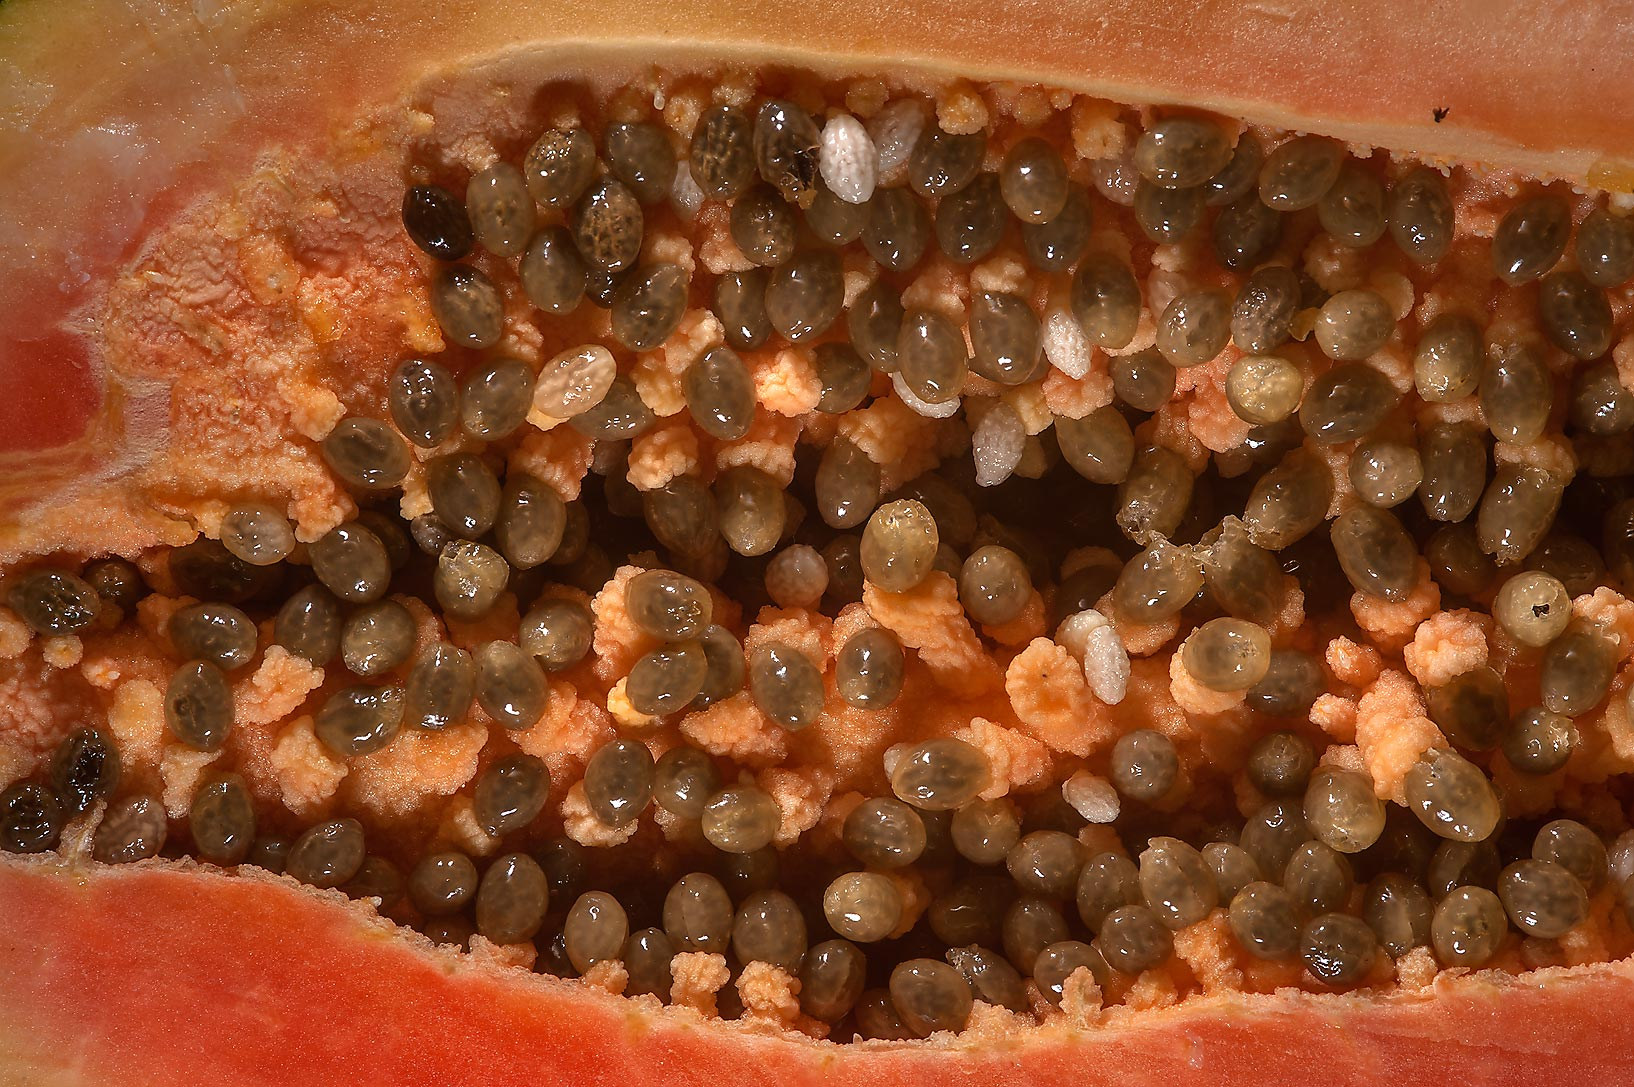 Seeds in a half of a fruit of Carica papaya taken from Carrefour Supermarket. Doha, Qatar